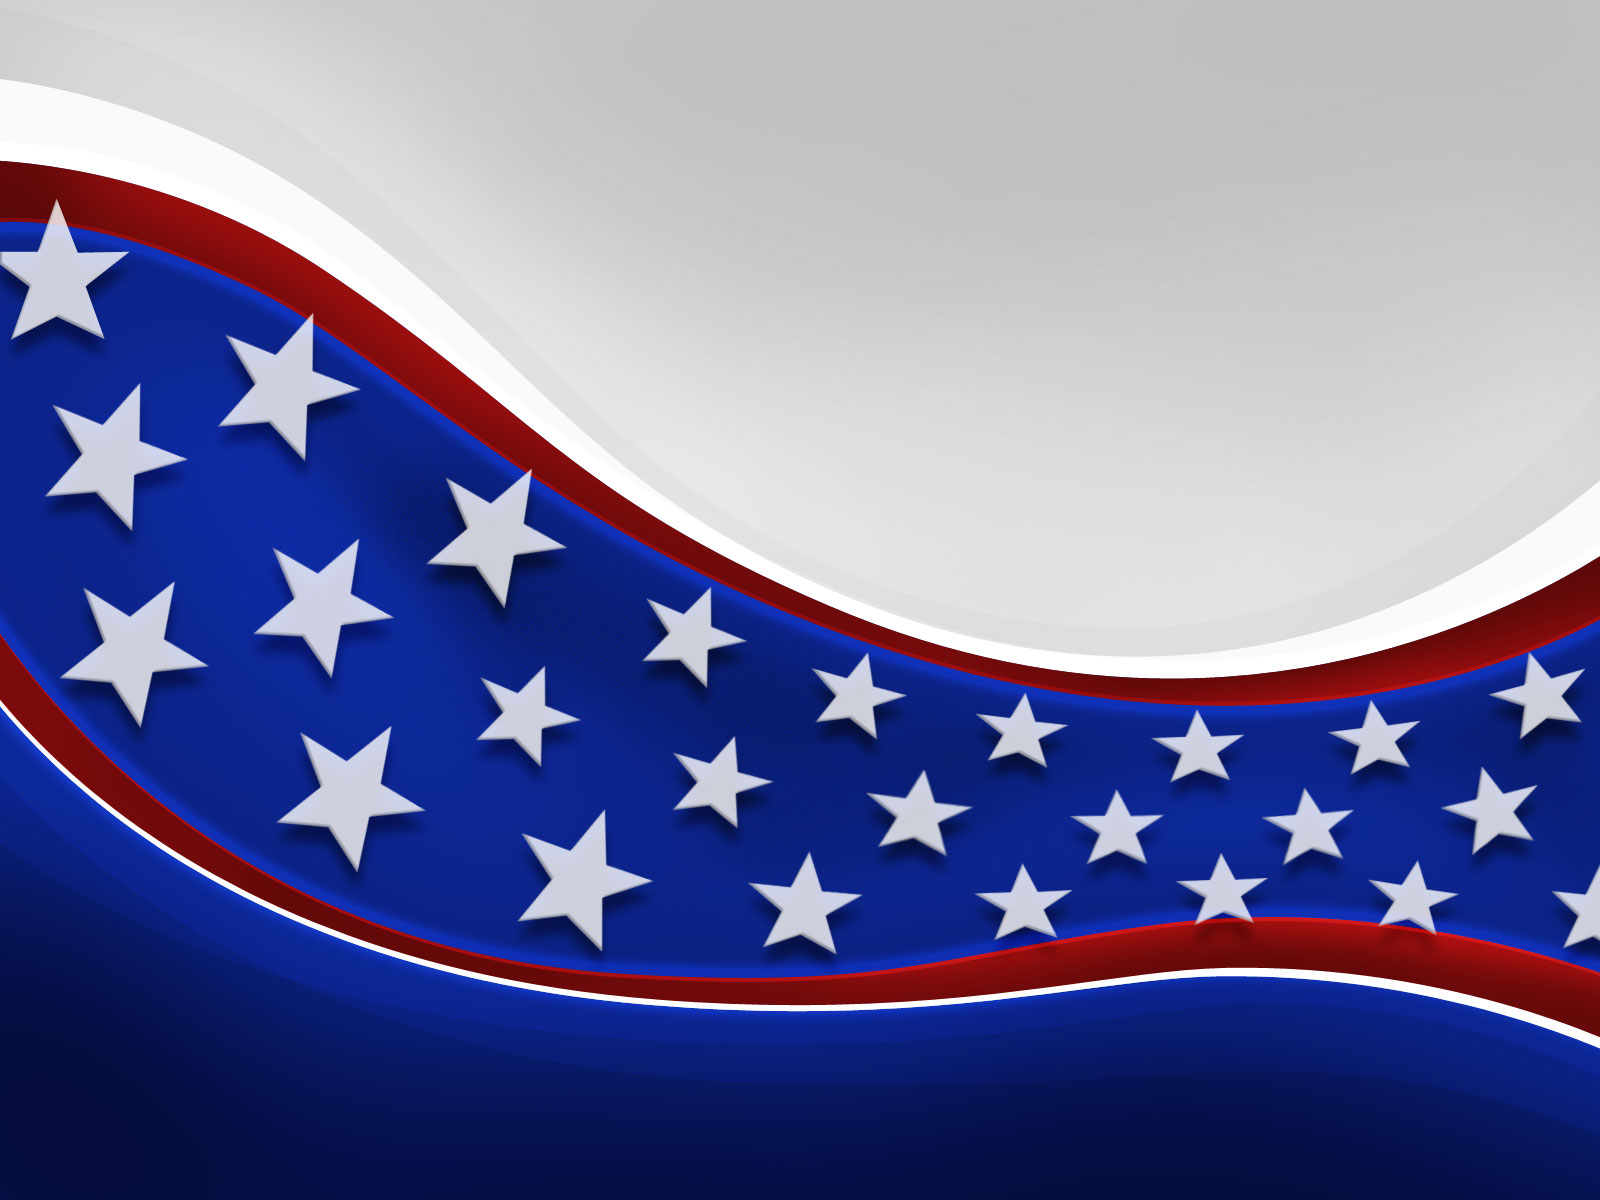 Cool Patriotic Background Abstract backgrounds 26 1600x1200